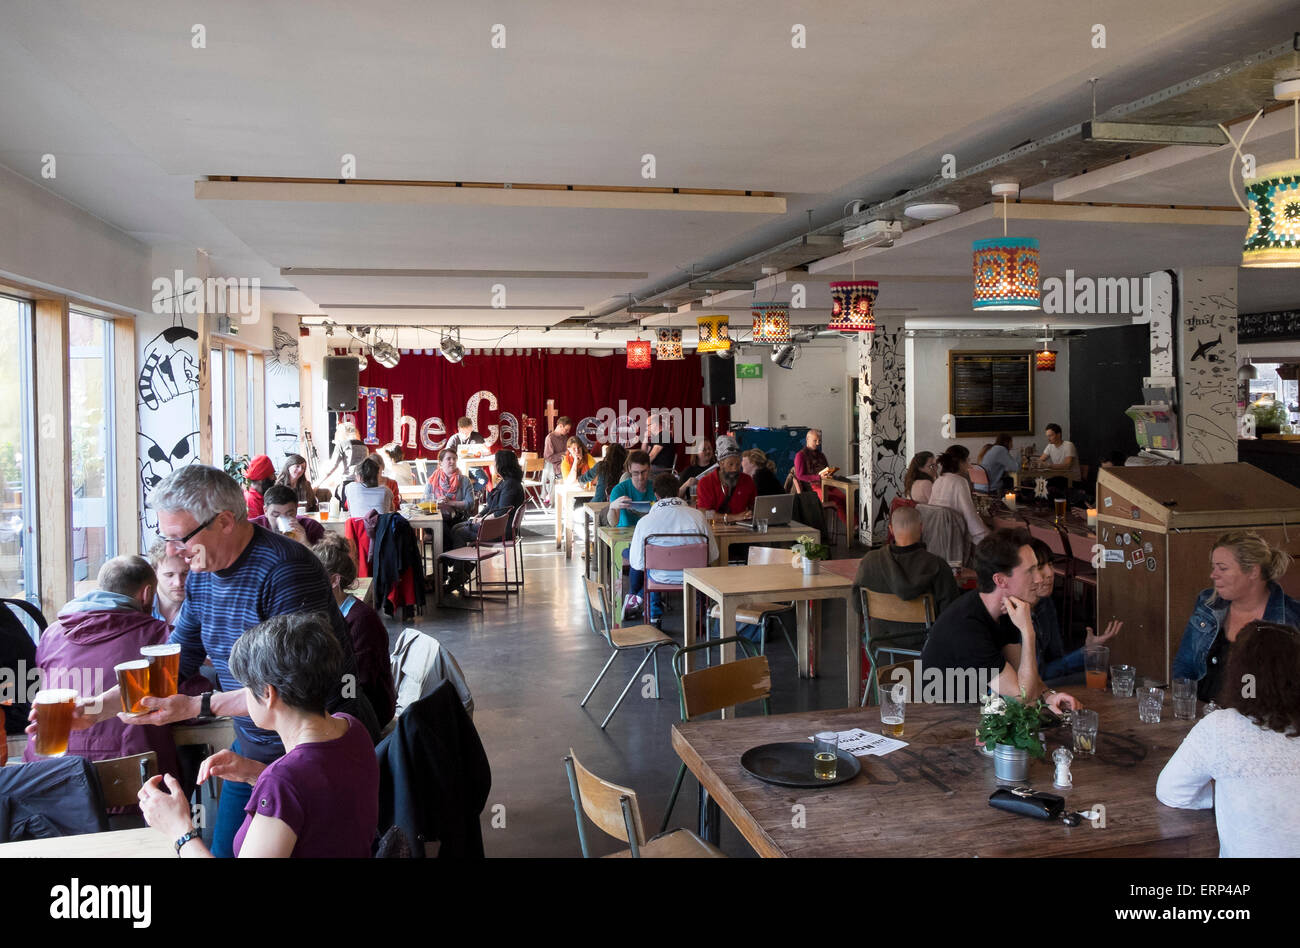 29 May 2015 - Bristol, UK : Early Friday Evening in The Canteen in Hamilton House, a community cafe / bar and Arts - Stock Image